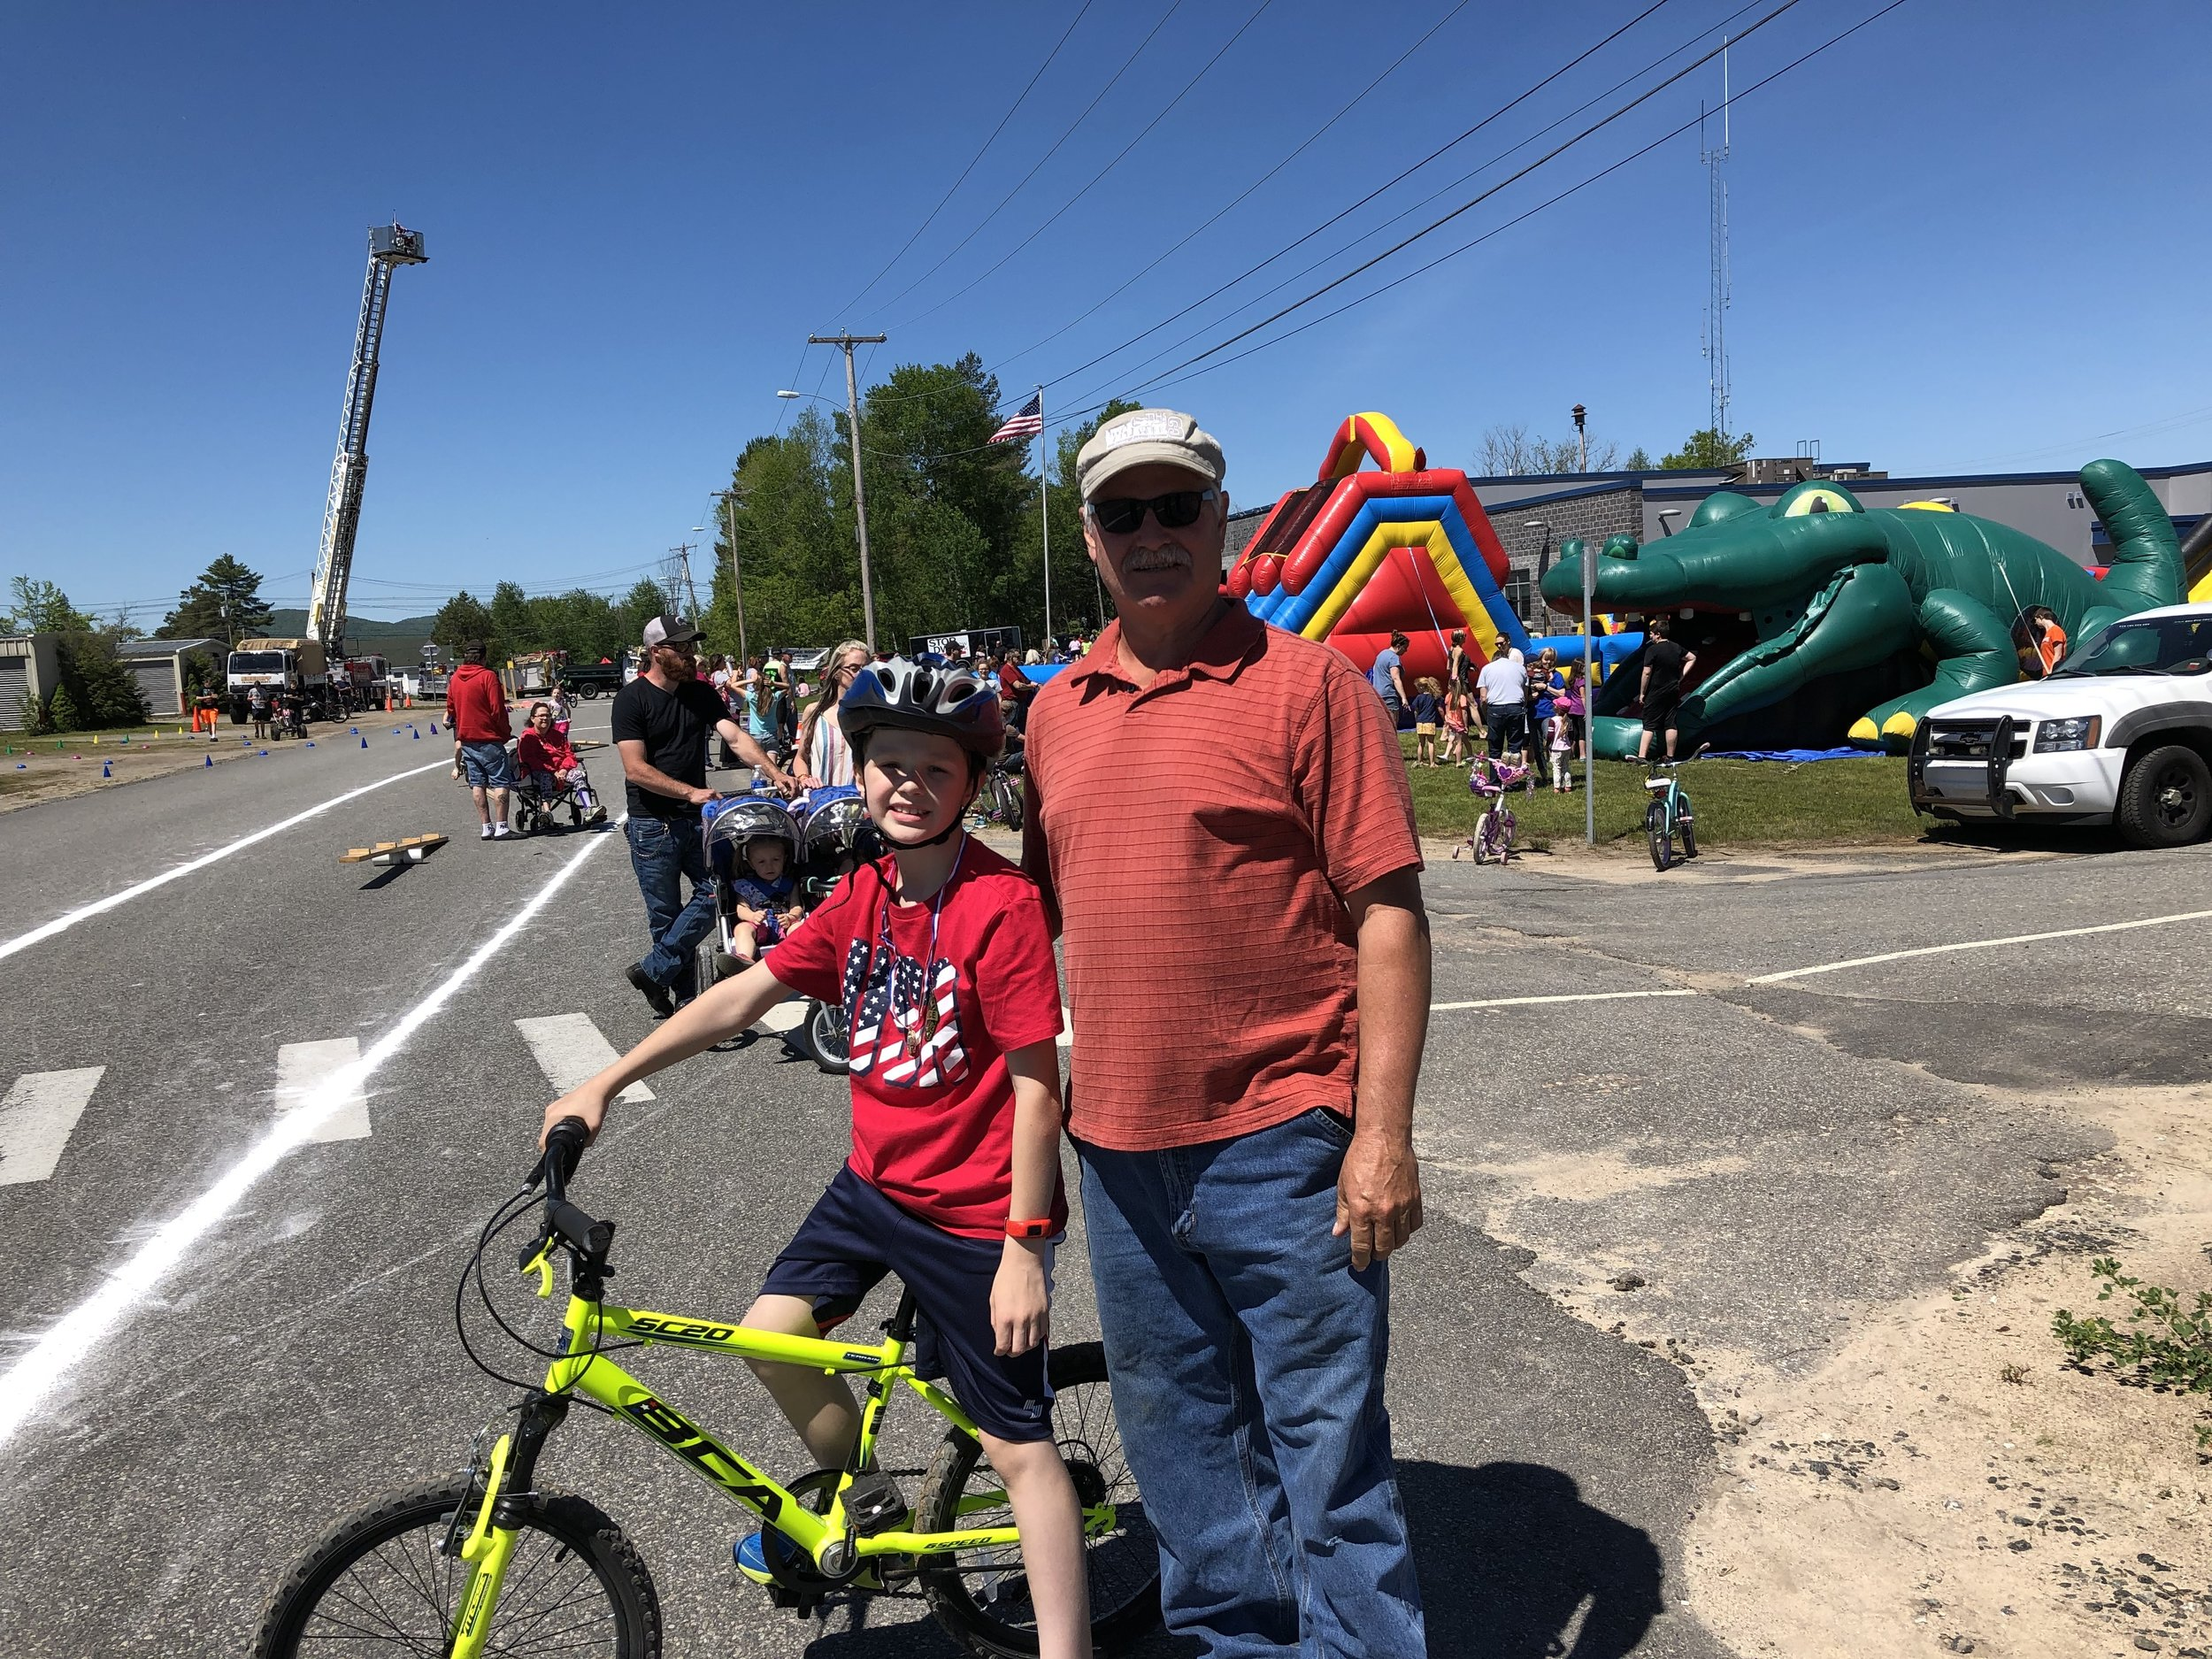 Bike rider Teagan Amell was at Saturday's event to try his luck at the various skill events, with encouragement from his grandfather, former town supervisor Roger Amell.